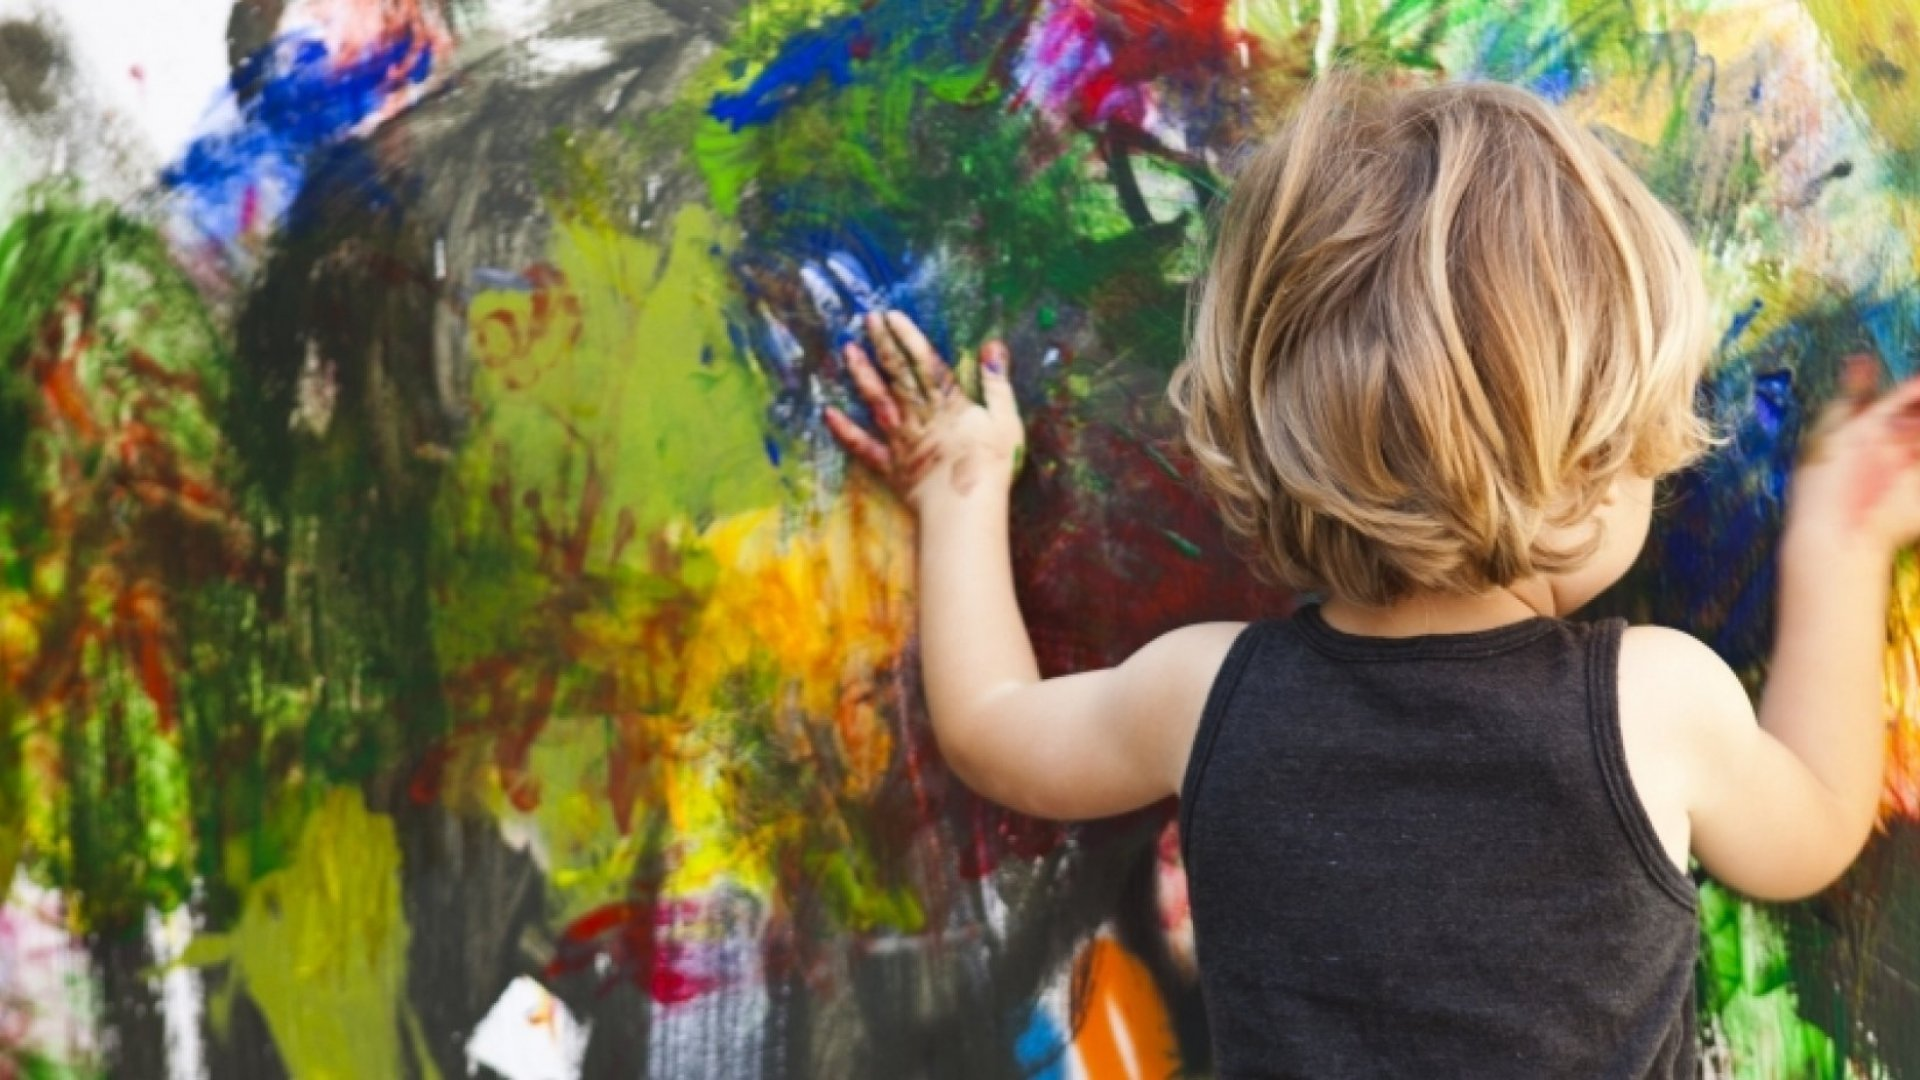 If You Want to Raise Creative Kids, Do These 3 Things